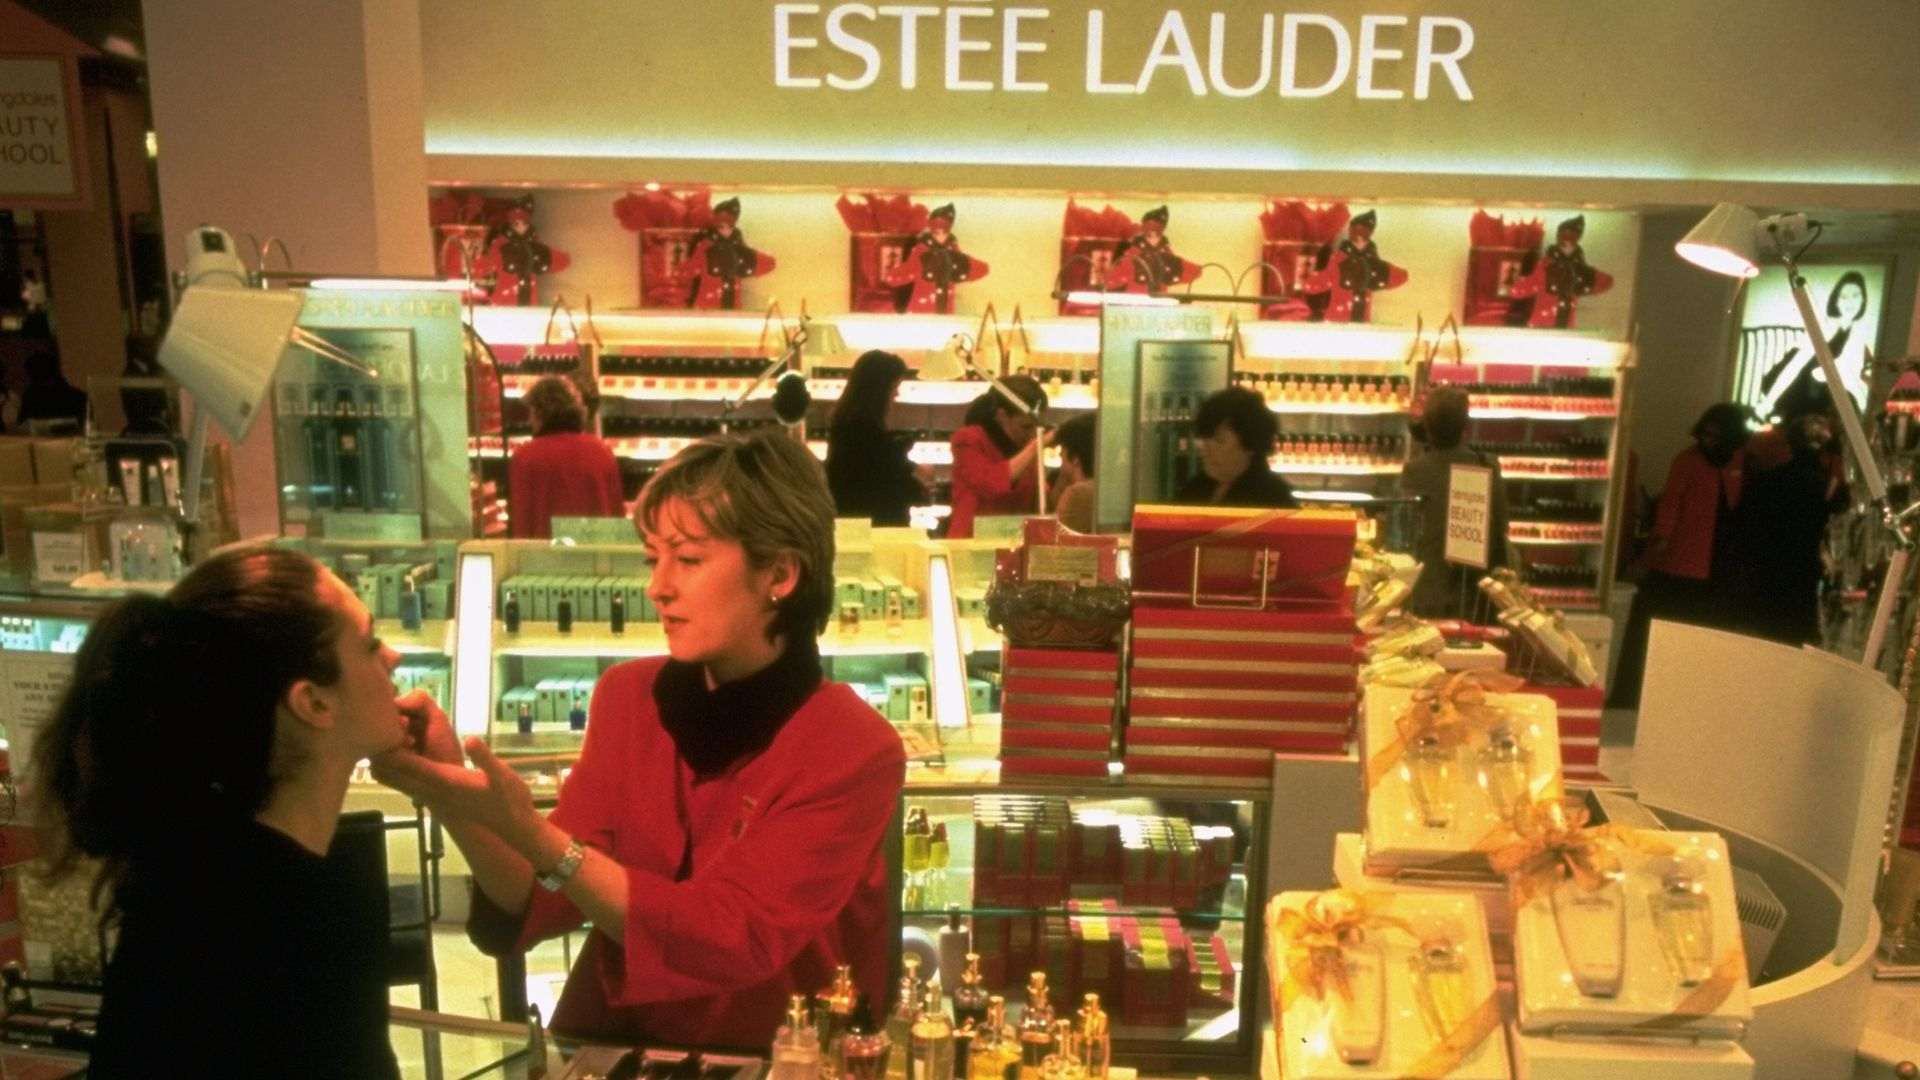 Estée Lauder made more money from airports than malls in 2018